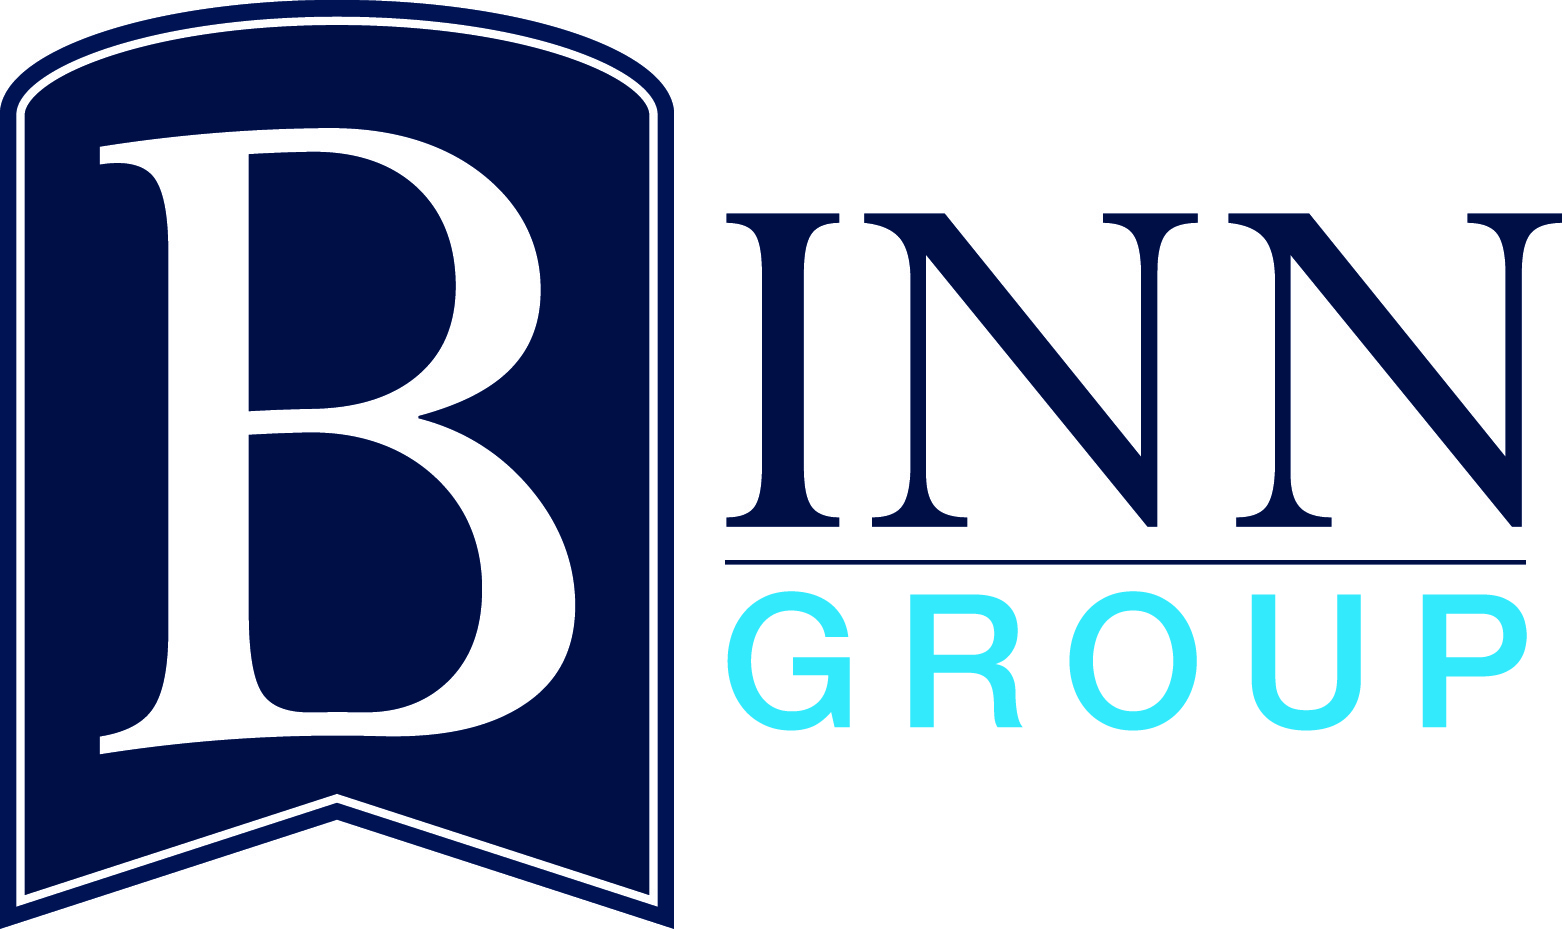 Photo of the logo of Binn Group, one of the main sponsors of Perth Highland Games 2018